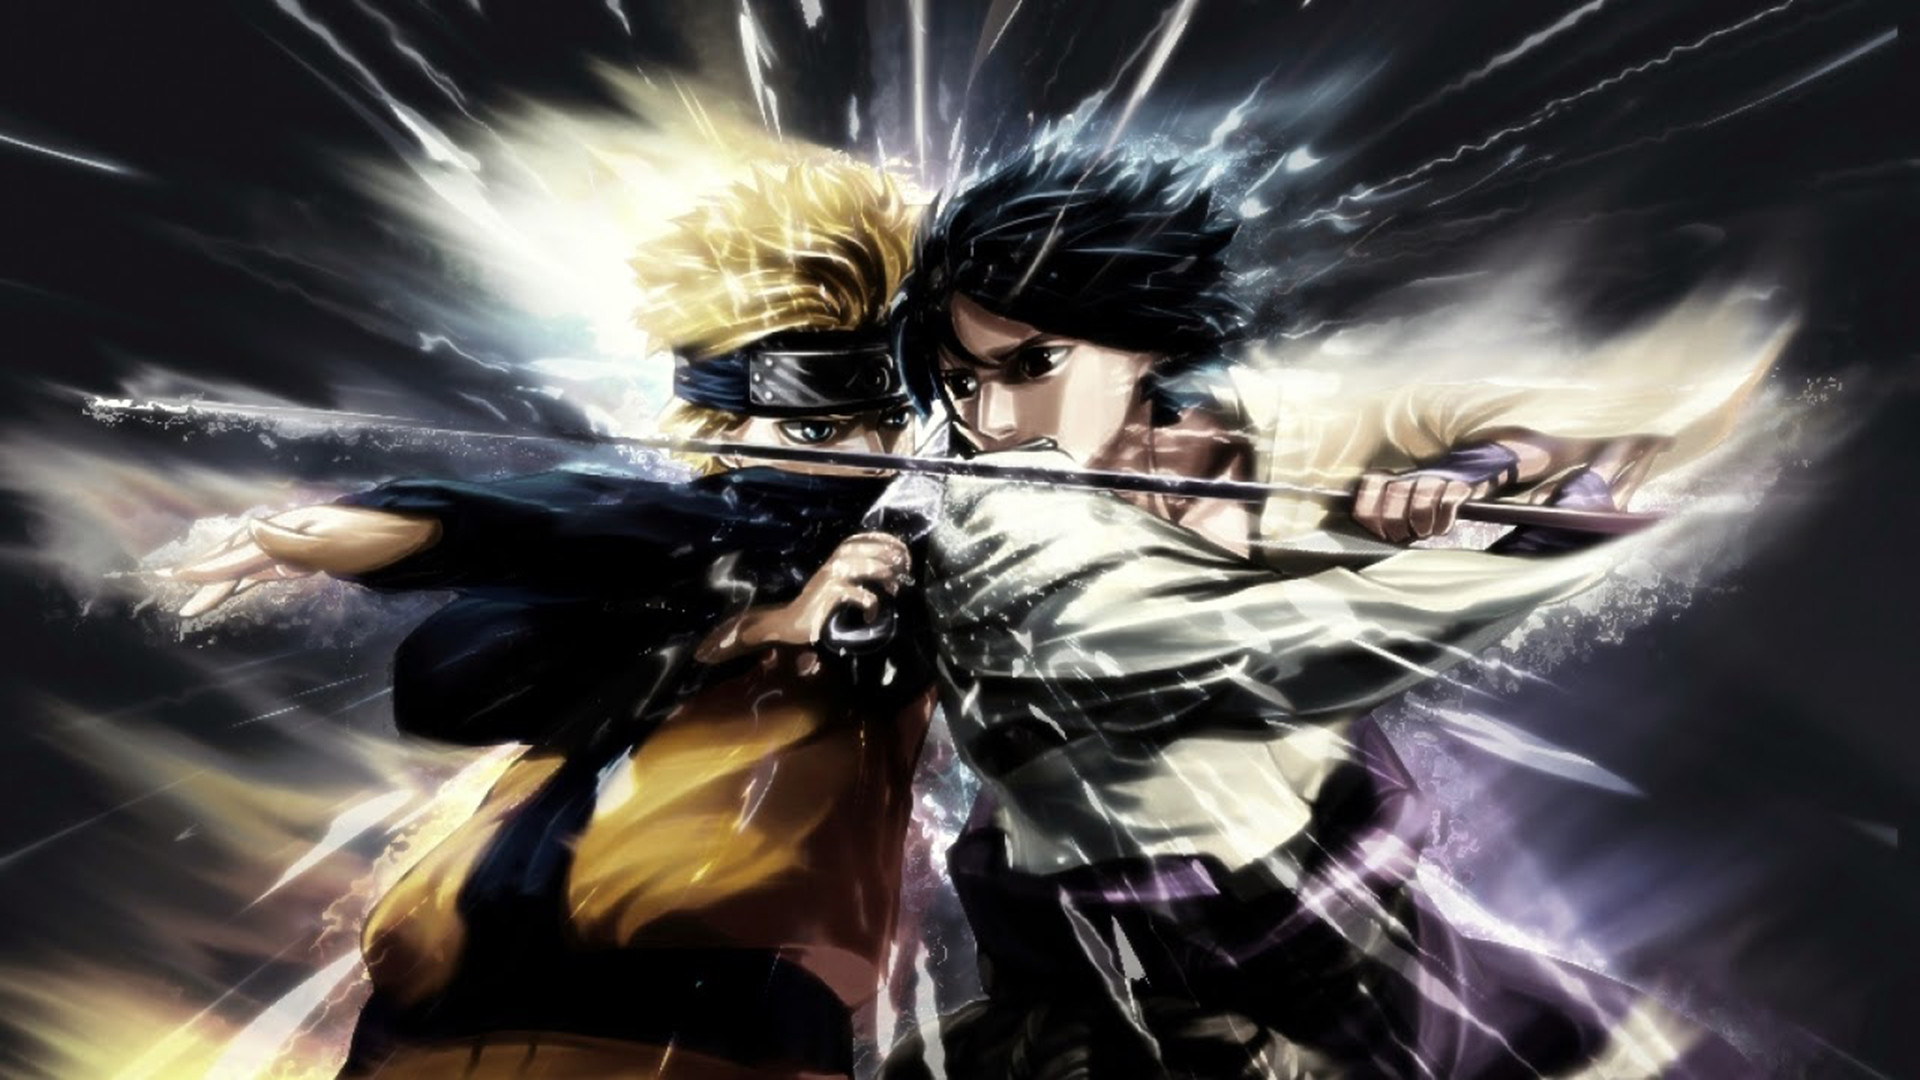 1920x1080 Naruto vs Sasuke Fighting HD desktop wallpaper : Widescreen Imagenes De  Naruto Y Sasuke Wallpapers Wallpapers)